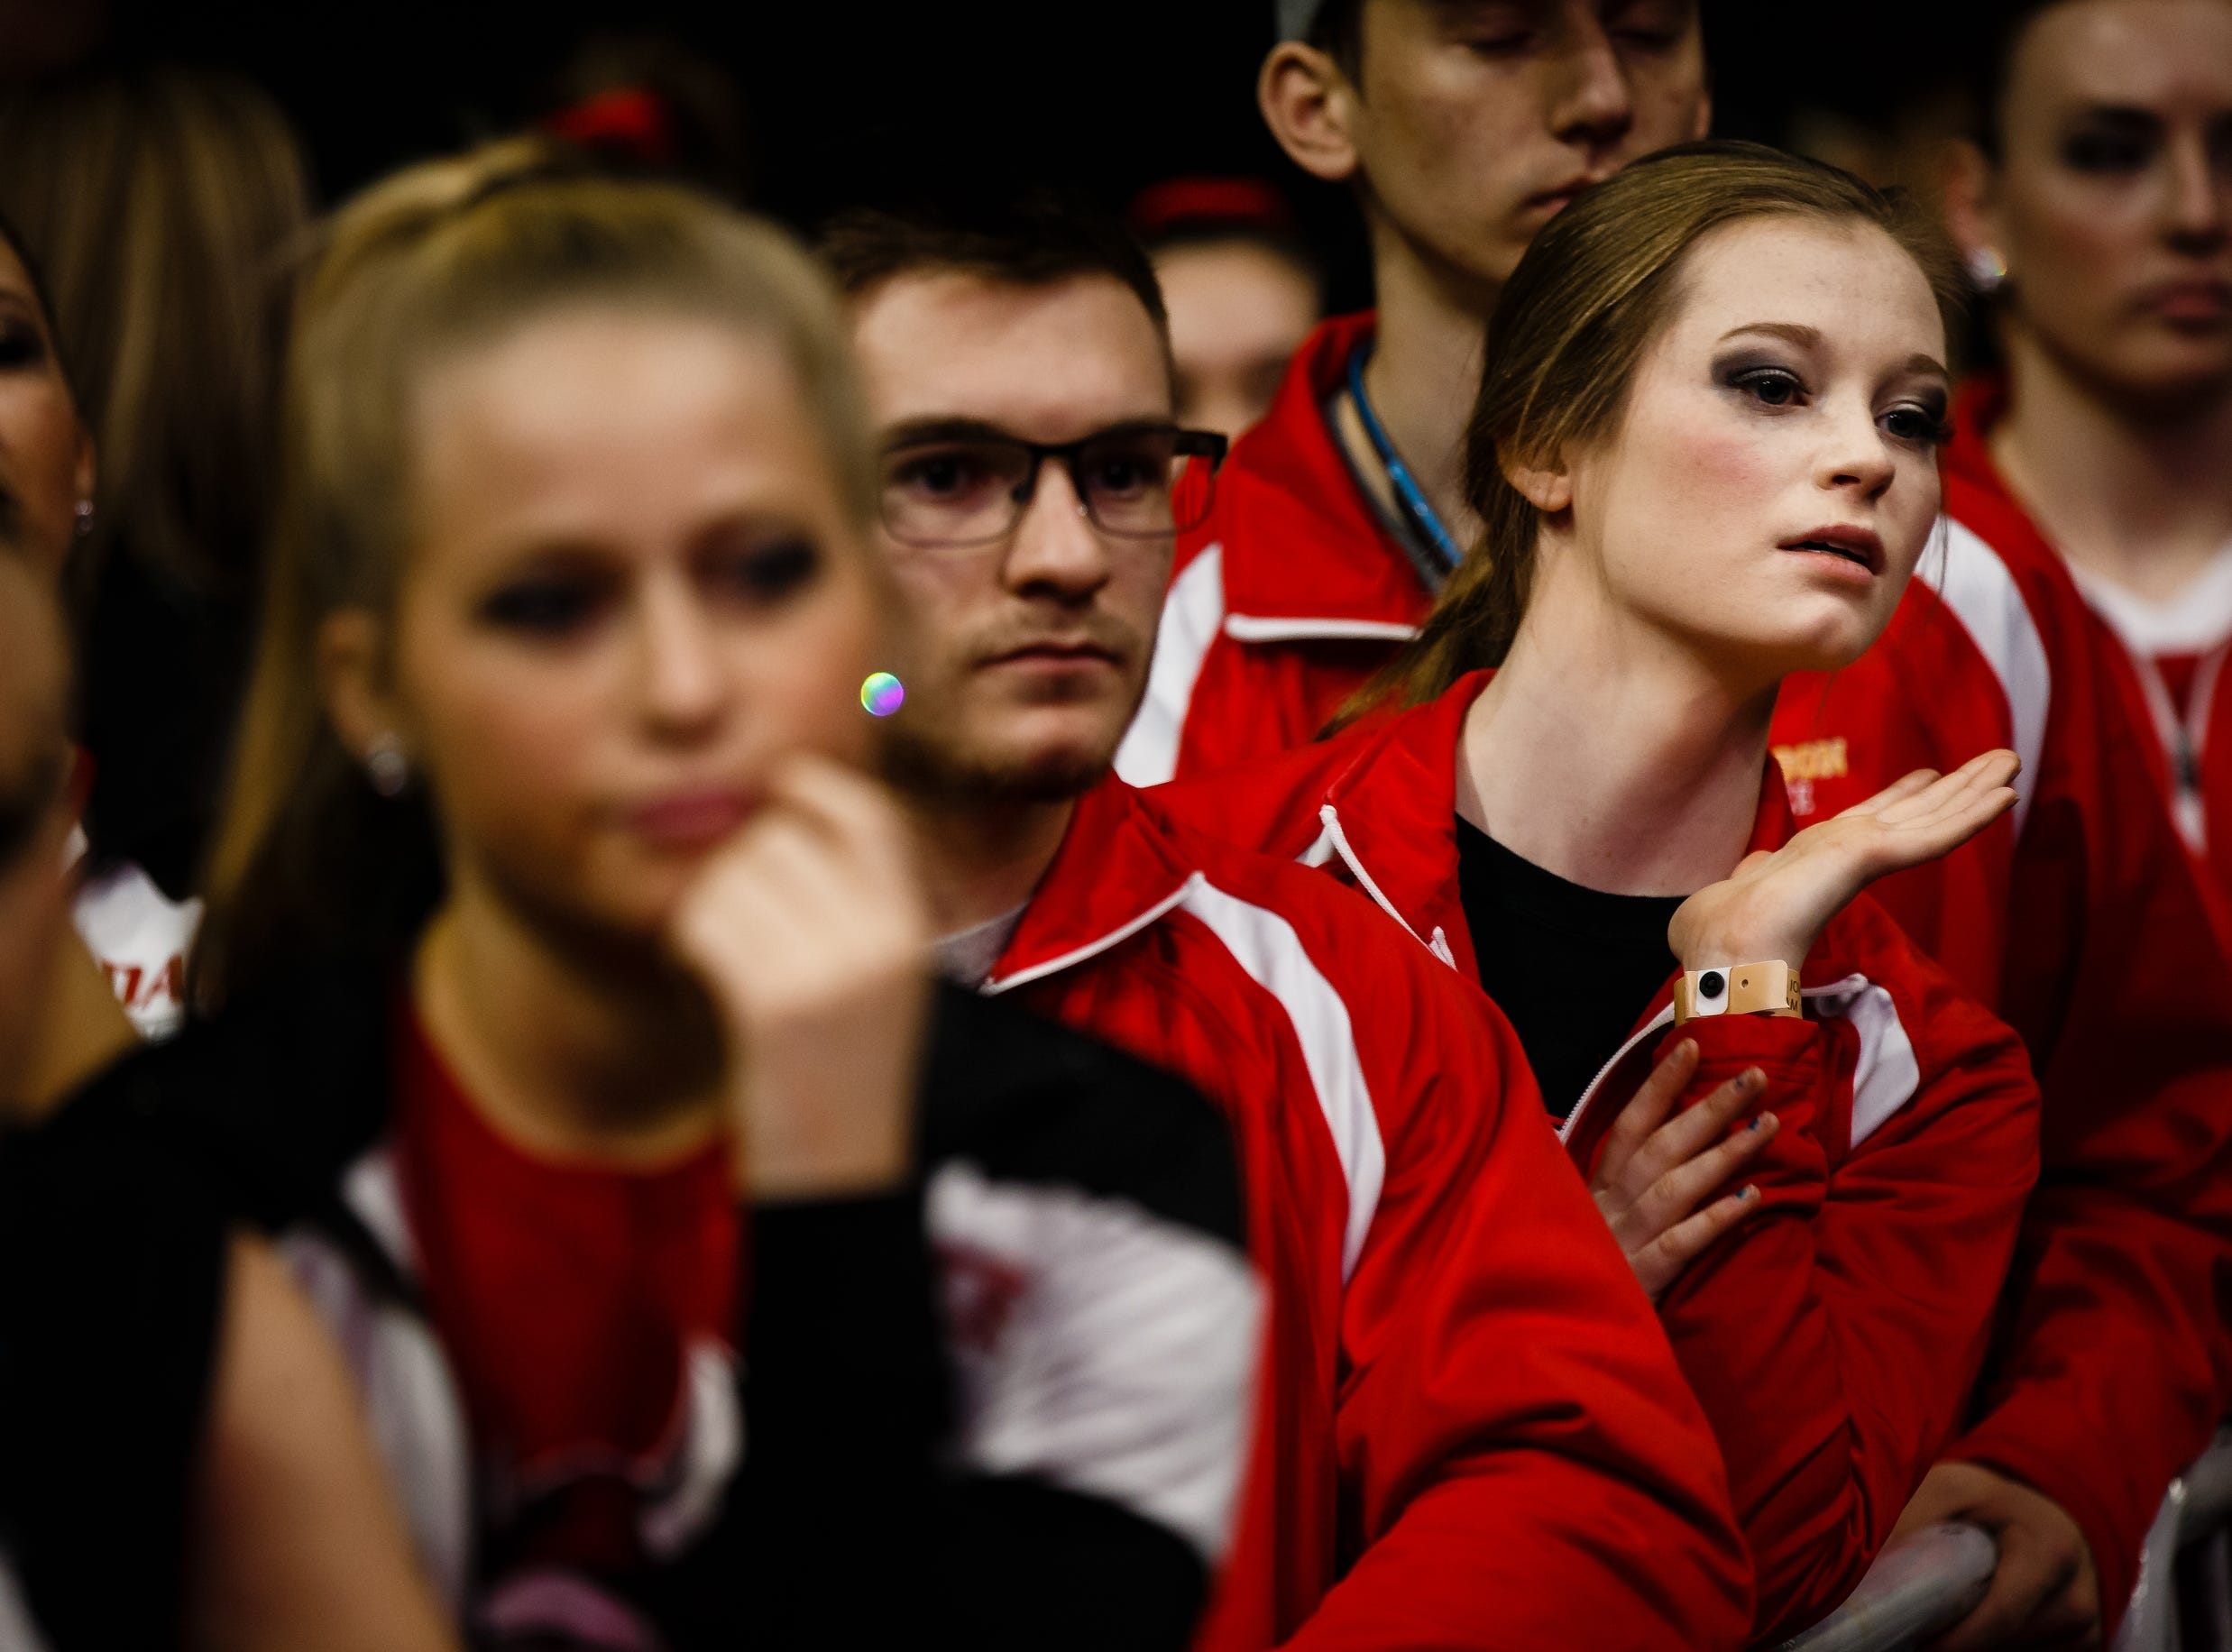 Competitors watch others perform during the Iowa Dance State Championships at Wells Fargo Arena on Friday, Nov. 30, 2018, in Des Moines.